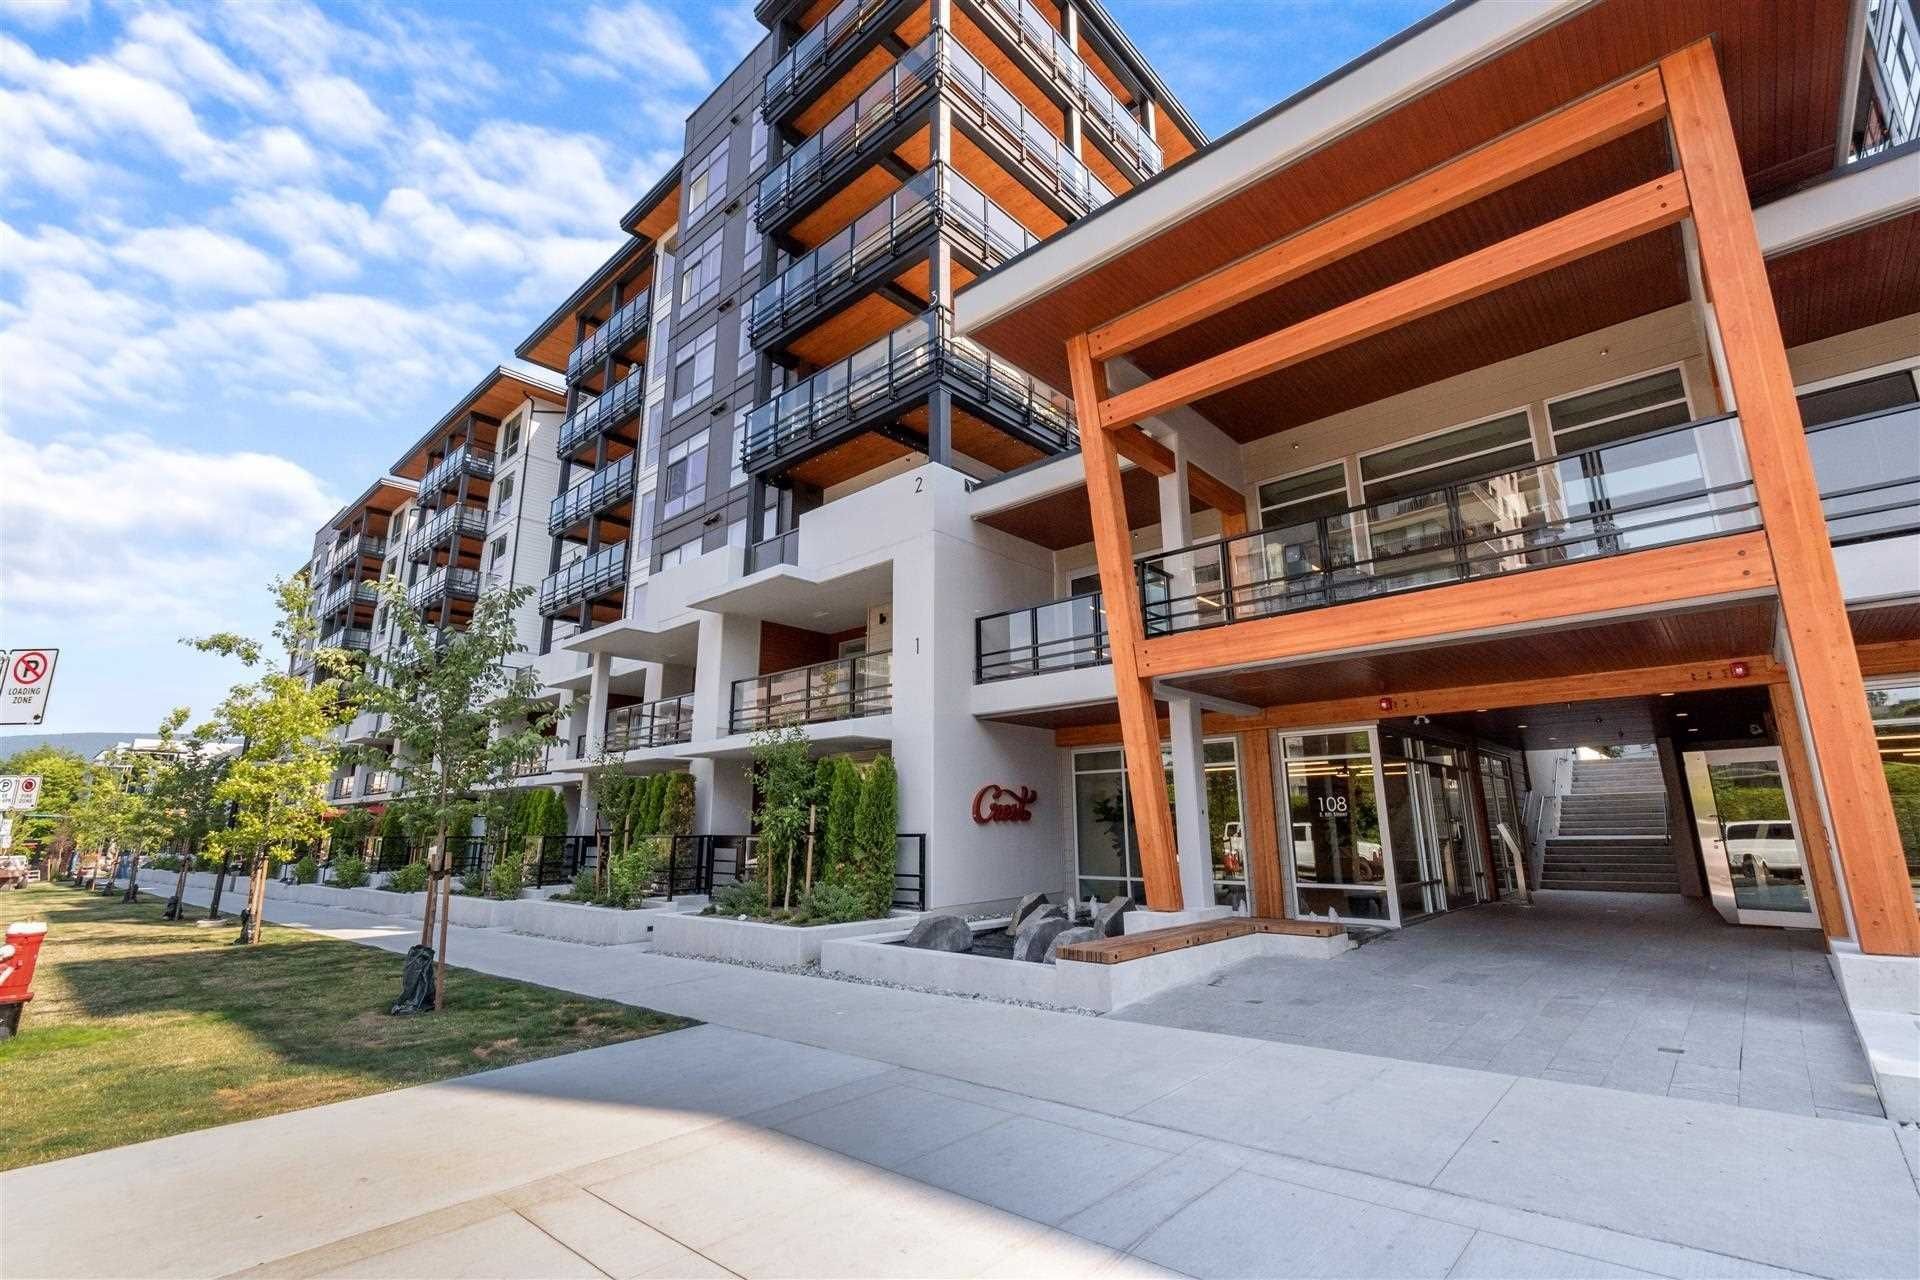 """Main Photo: 219 108 E 8TH Street in North Vancouver: Central Lonsdale Condo for sale in """"CREST BY ADERA"""" : MLS®# R2597882"""